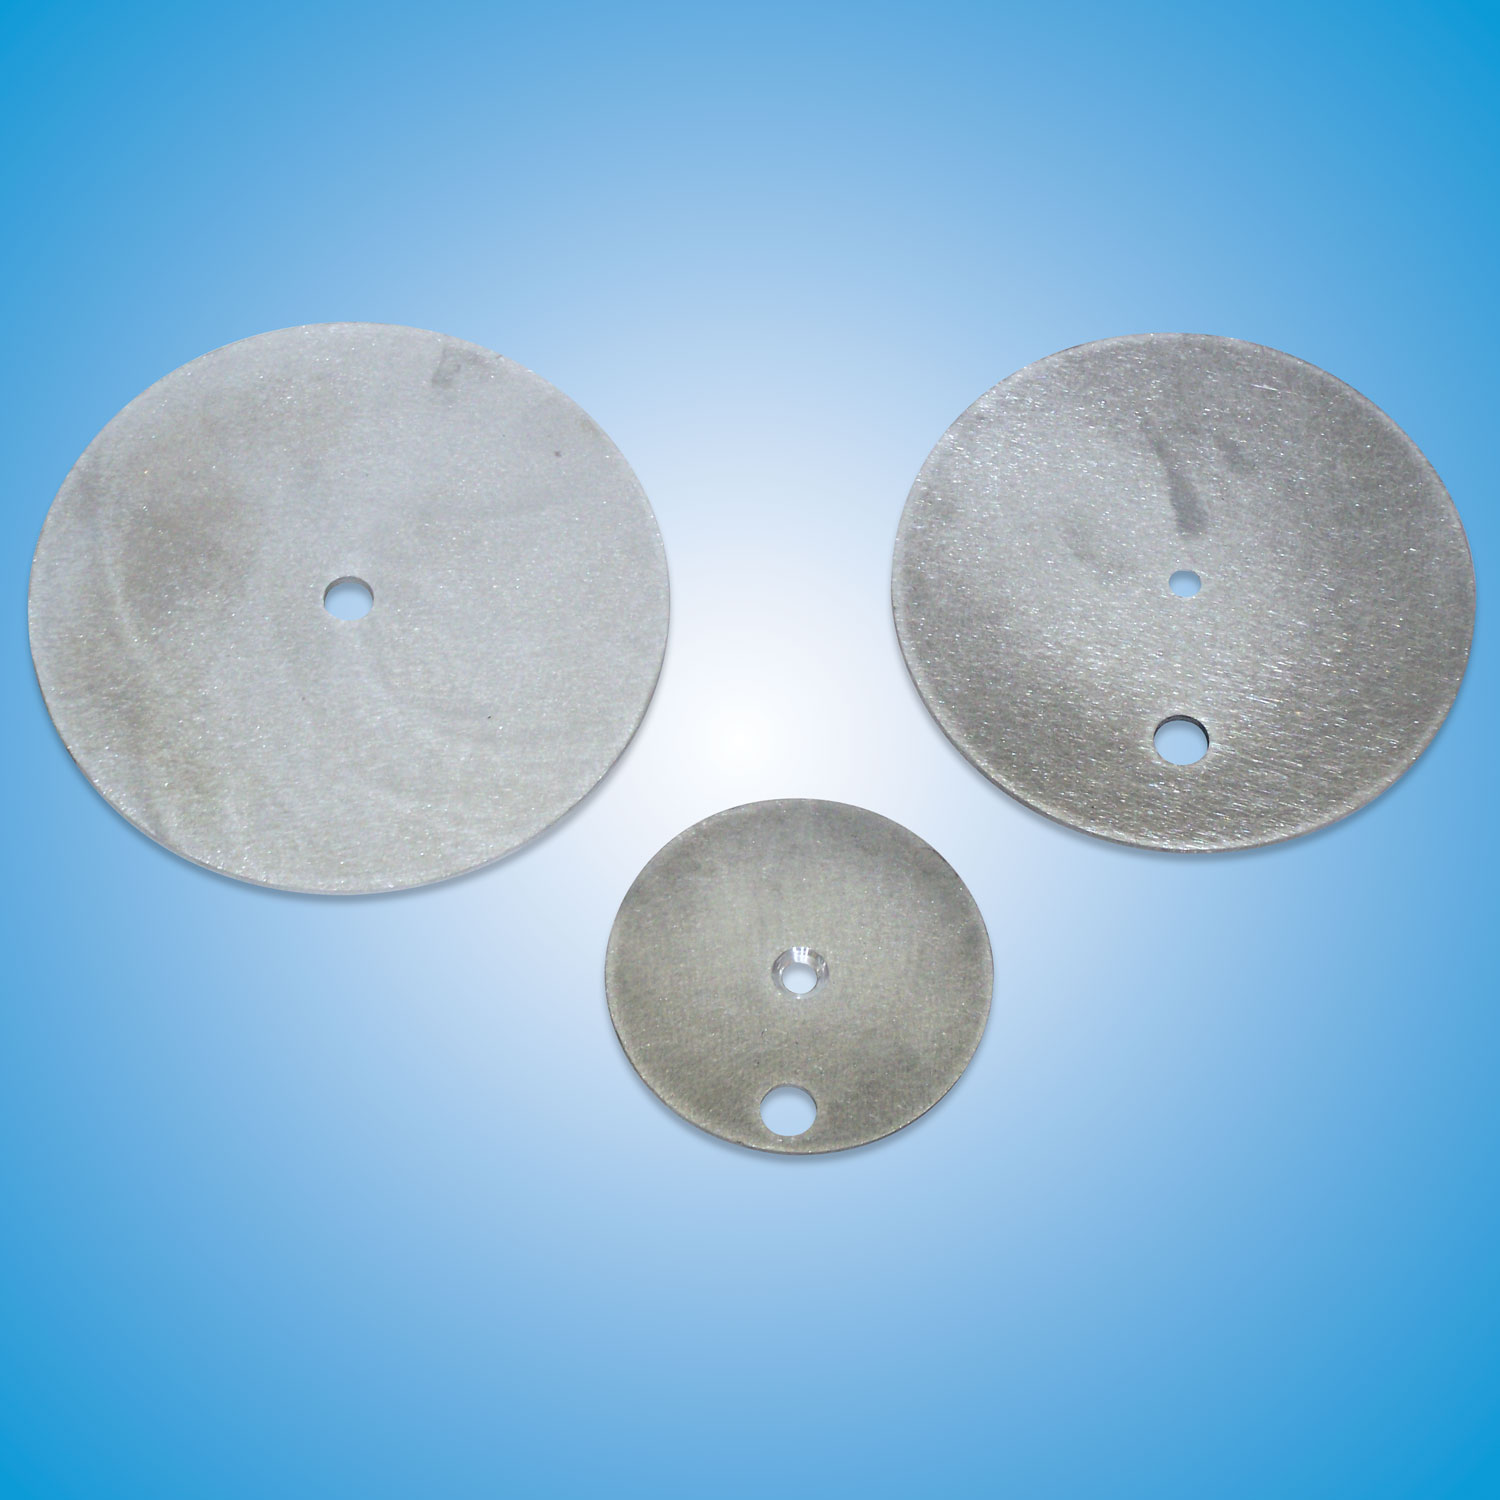 Aluminum Launcher Discs    Air Launcher Disc (small and large)  Part #6ROUND1HOLE — $27   Spring Launcher Replacement Disc (small 2-hole)  Part #4035 — $26   Spring Launcher Replacement Disc (large 2-hole)  Part #4055 — $28